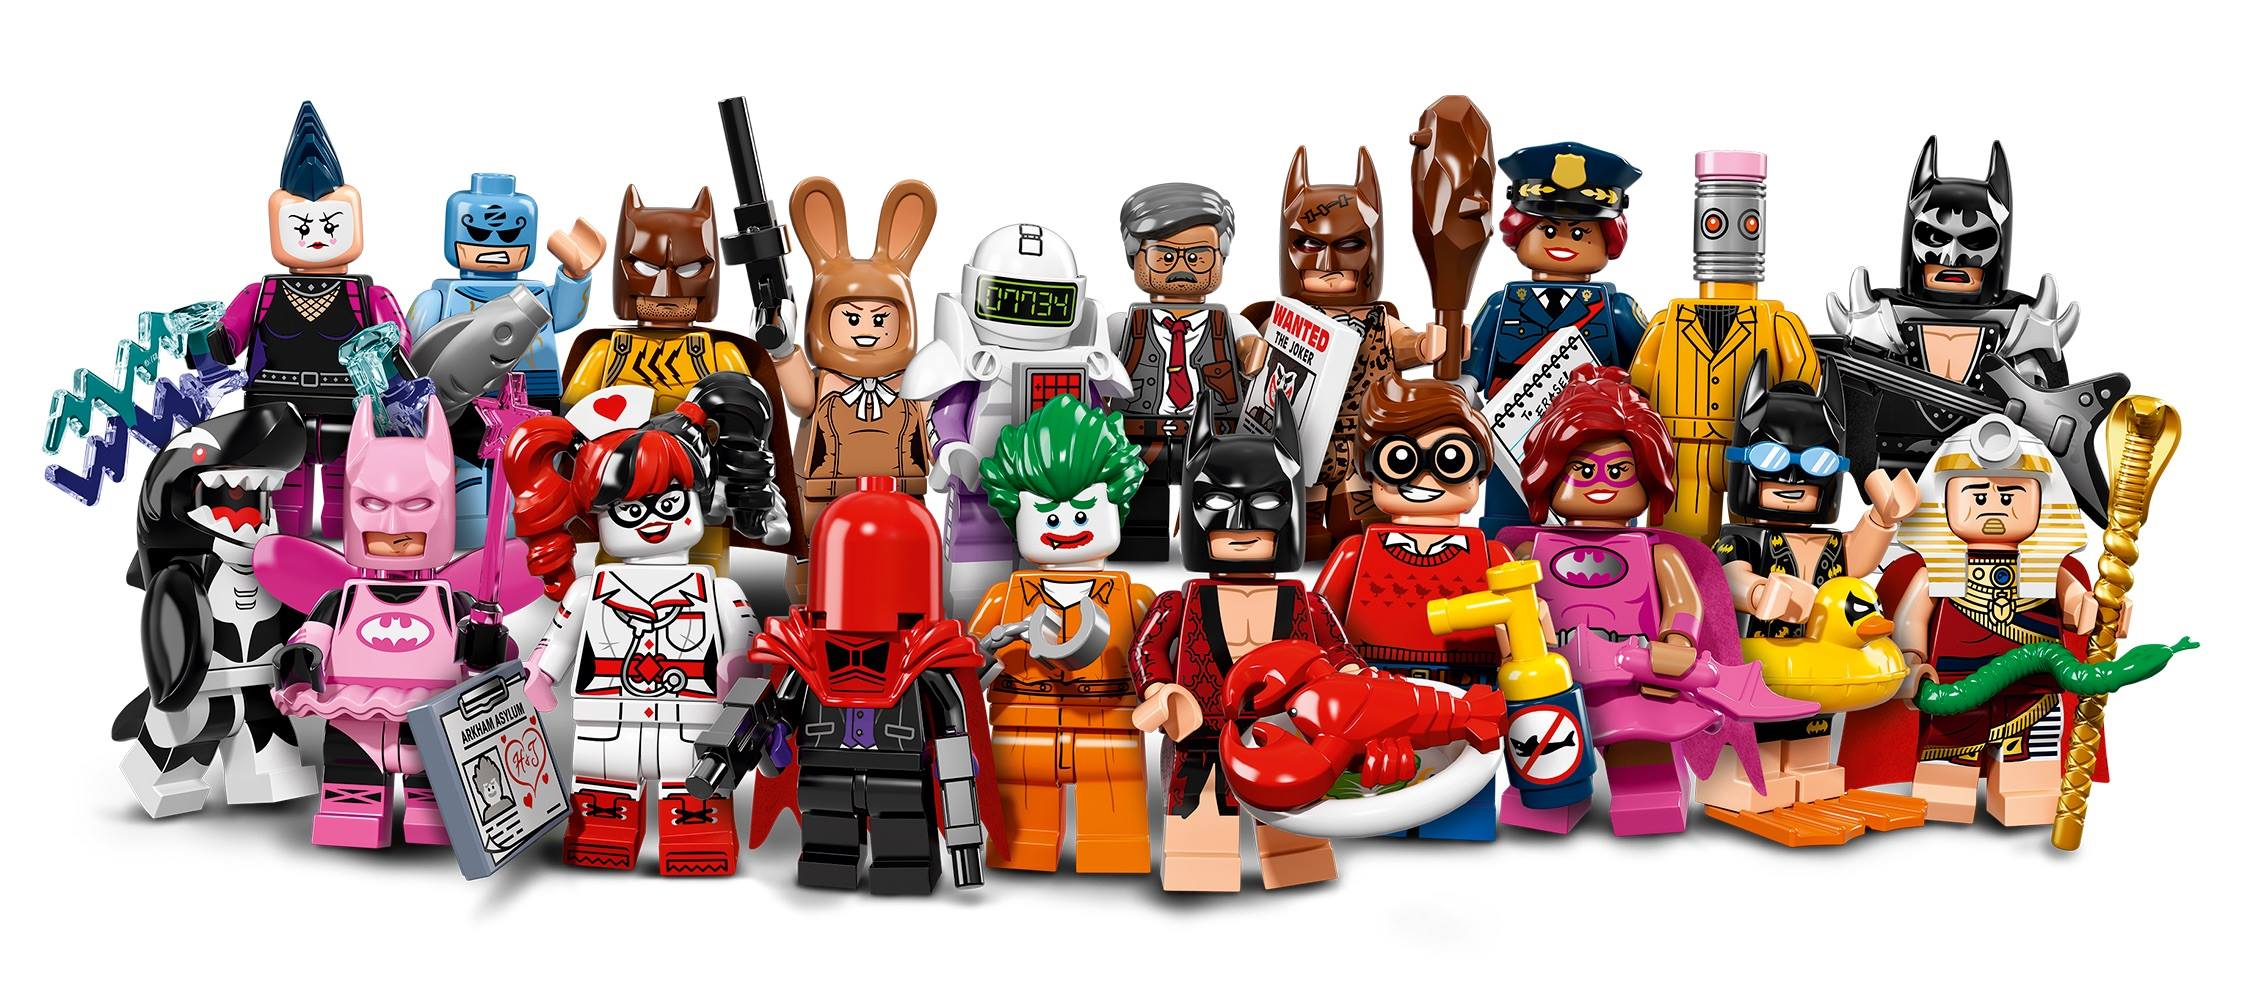 lego_batman_minifigures